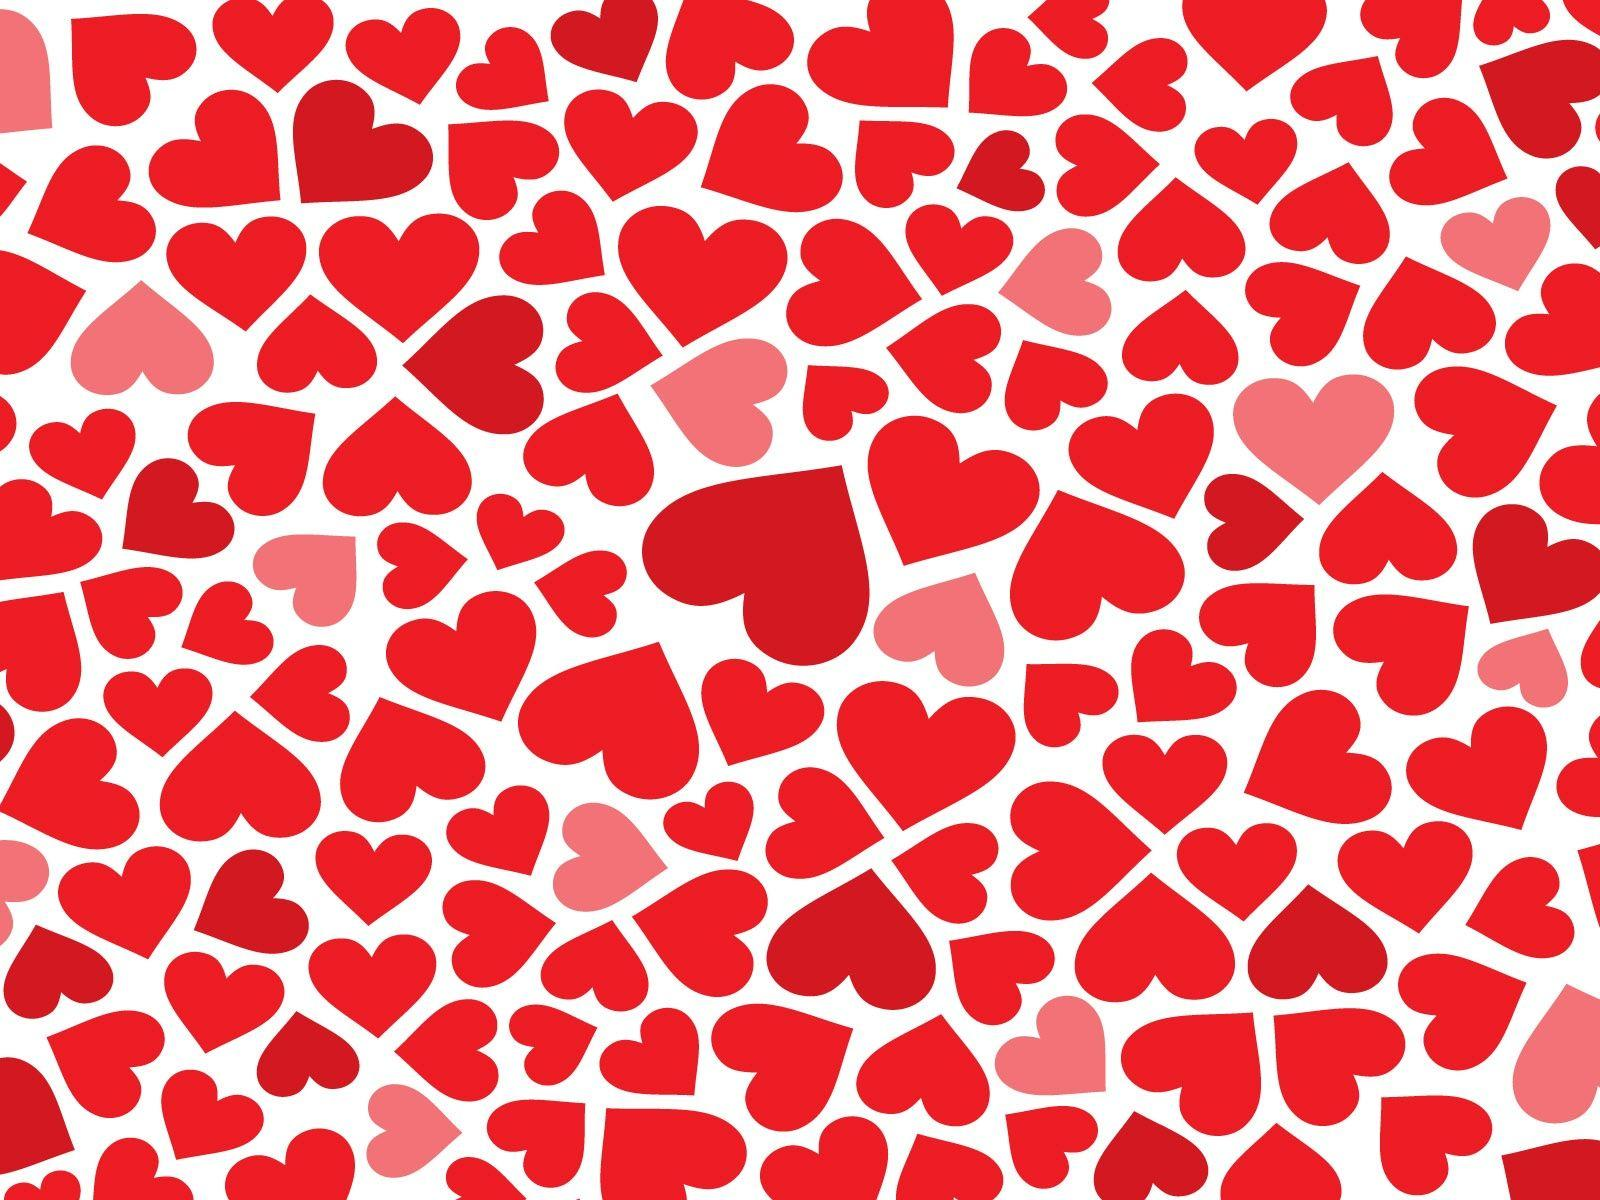 Red Hearts Backgrounds